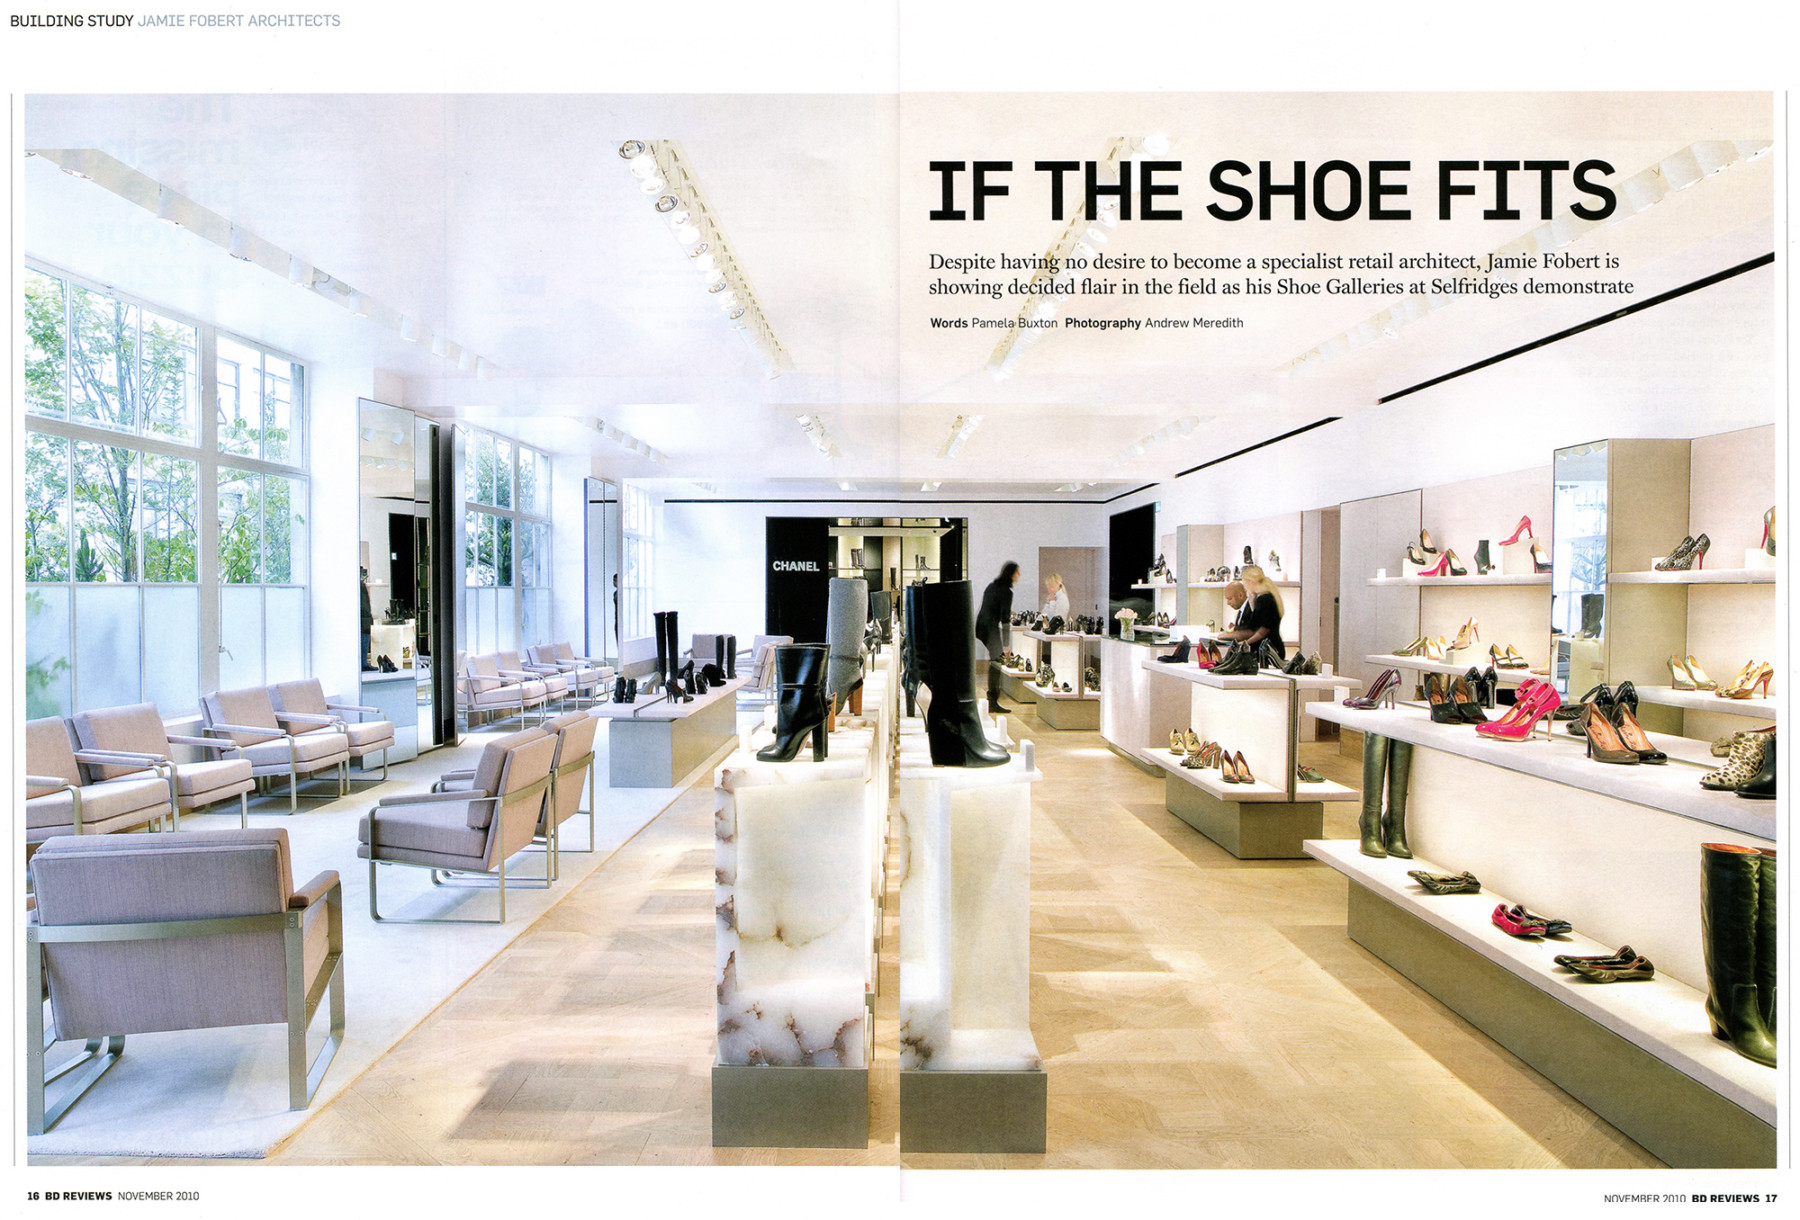 Jamie-Fobert-Architects-Selfridges-Shoes-Article-Press-BD 1